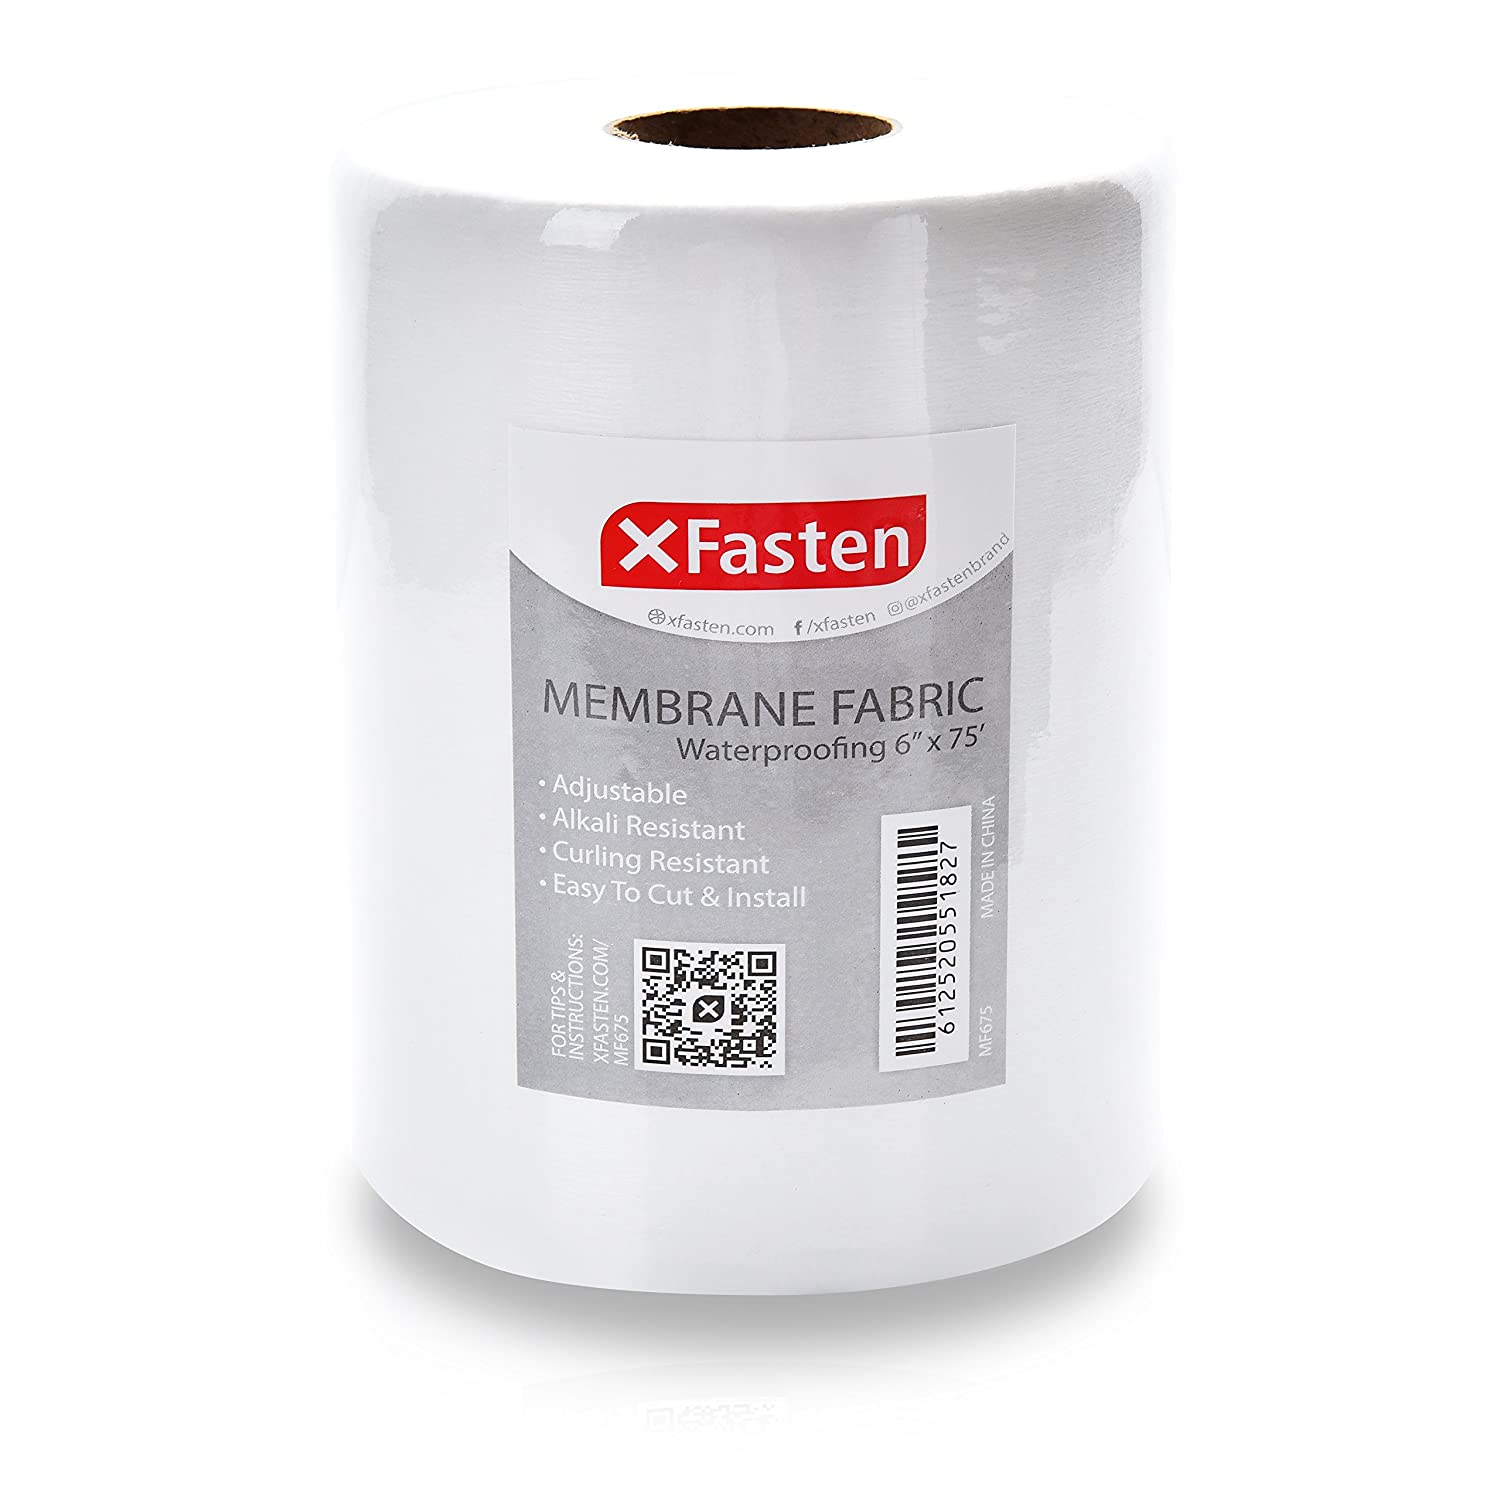 XFasten Fiberglass Waterproofing Anti Fracture Membrane Fabric Tape 6 Inch x 75 Foot Water Barrier Mesh Tape for Shower Walls and Tiles